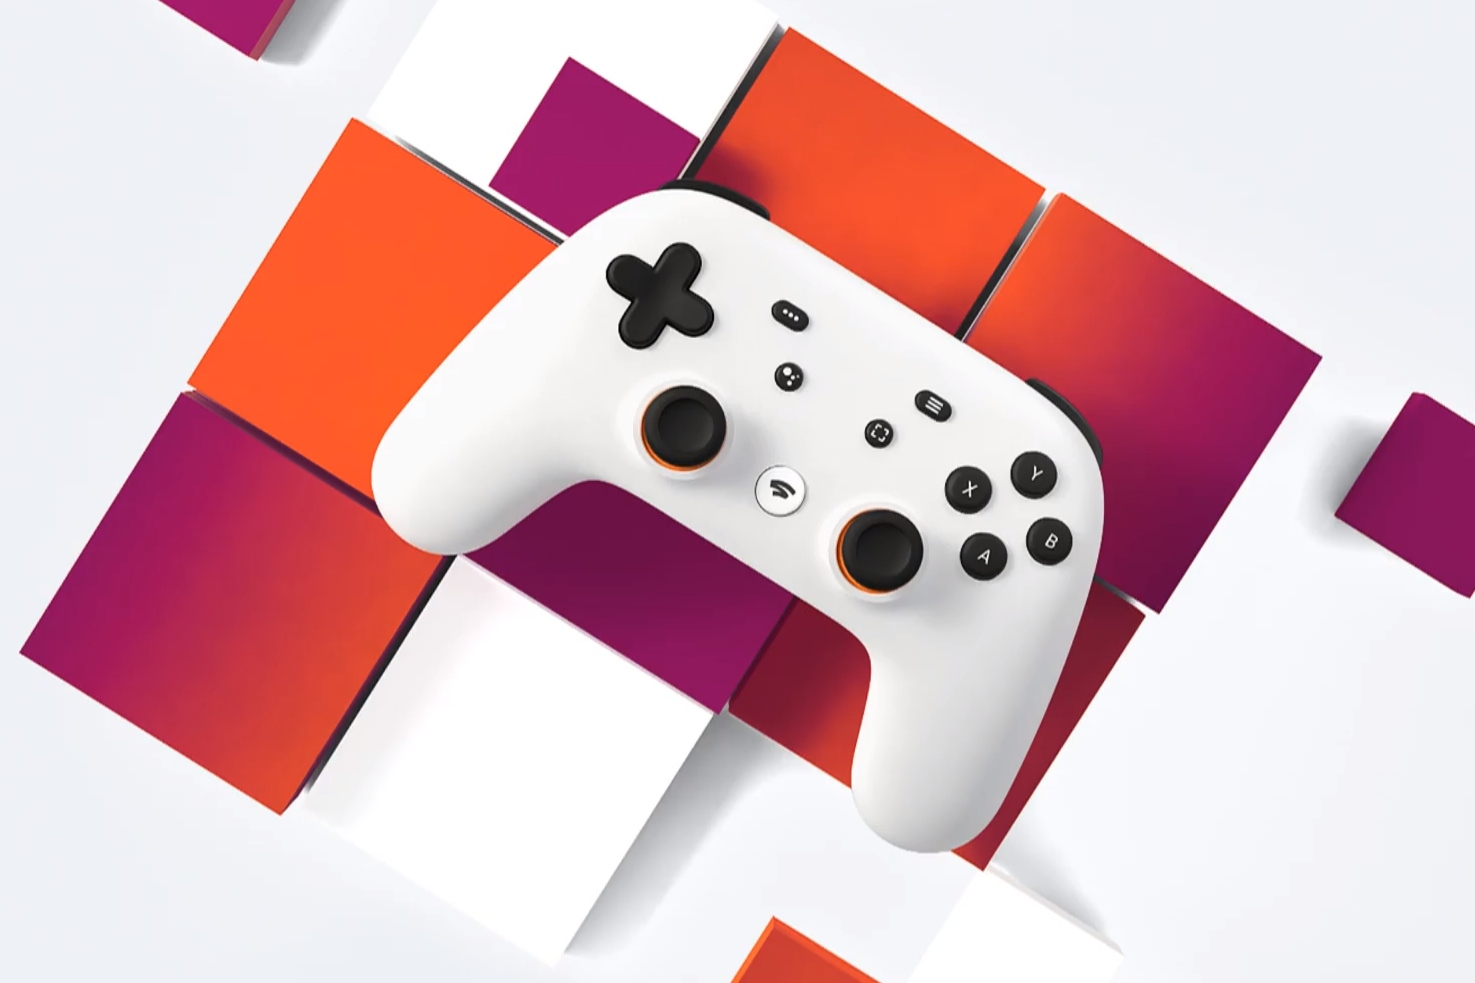 Chromebook owners can now redeem three months of Stadia Pro for free